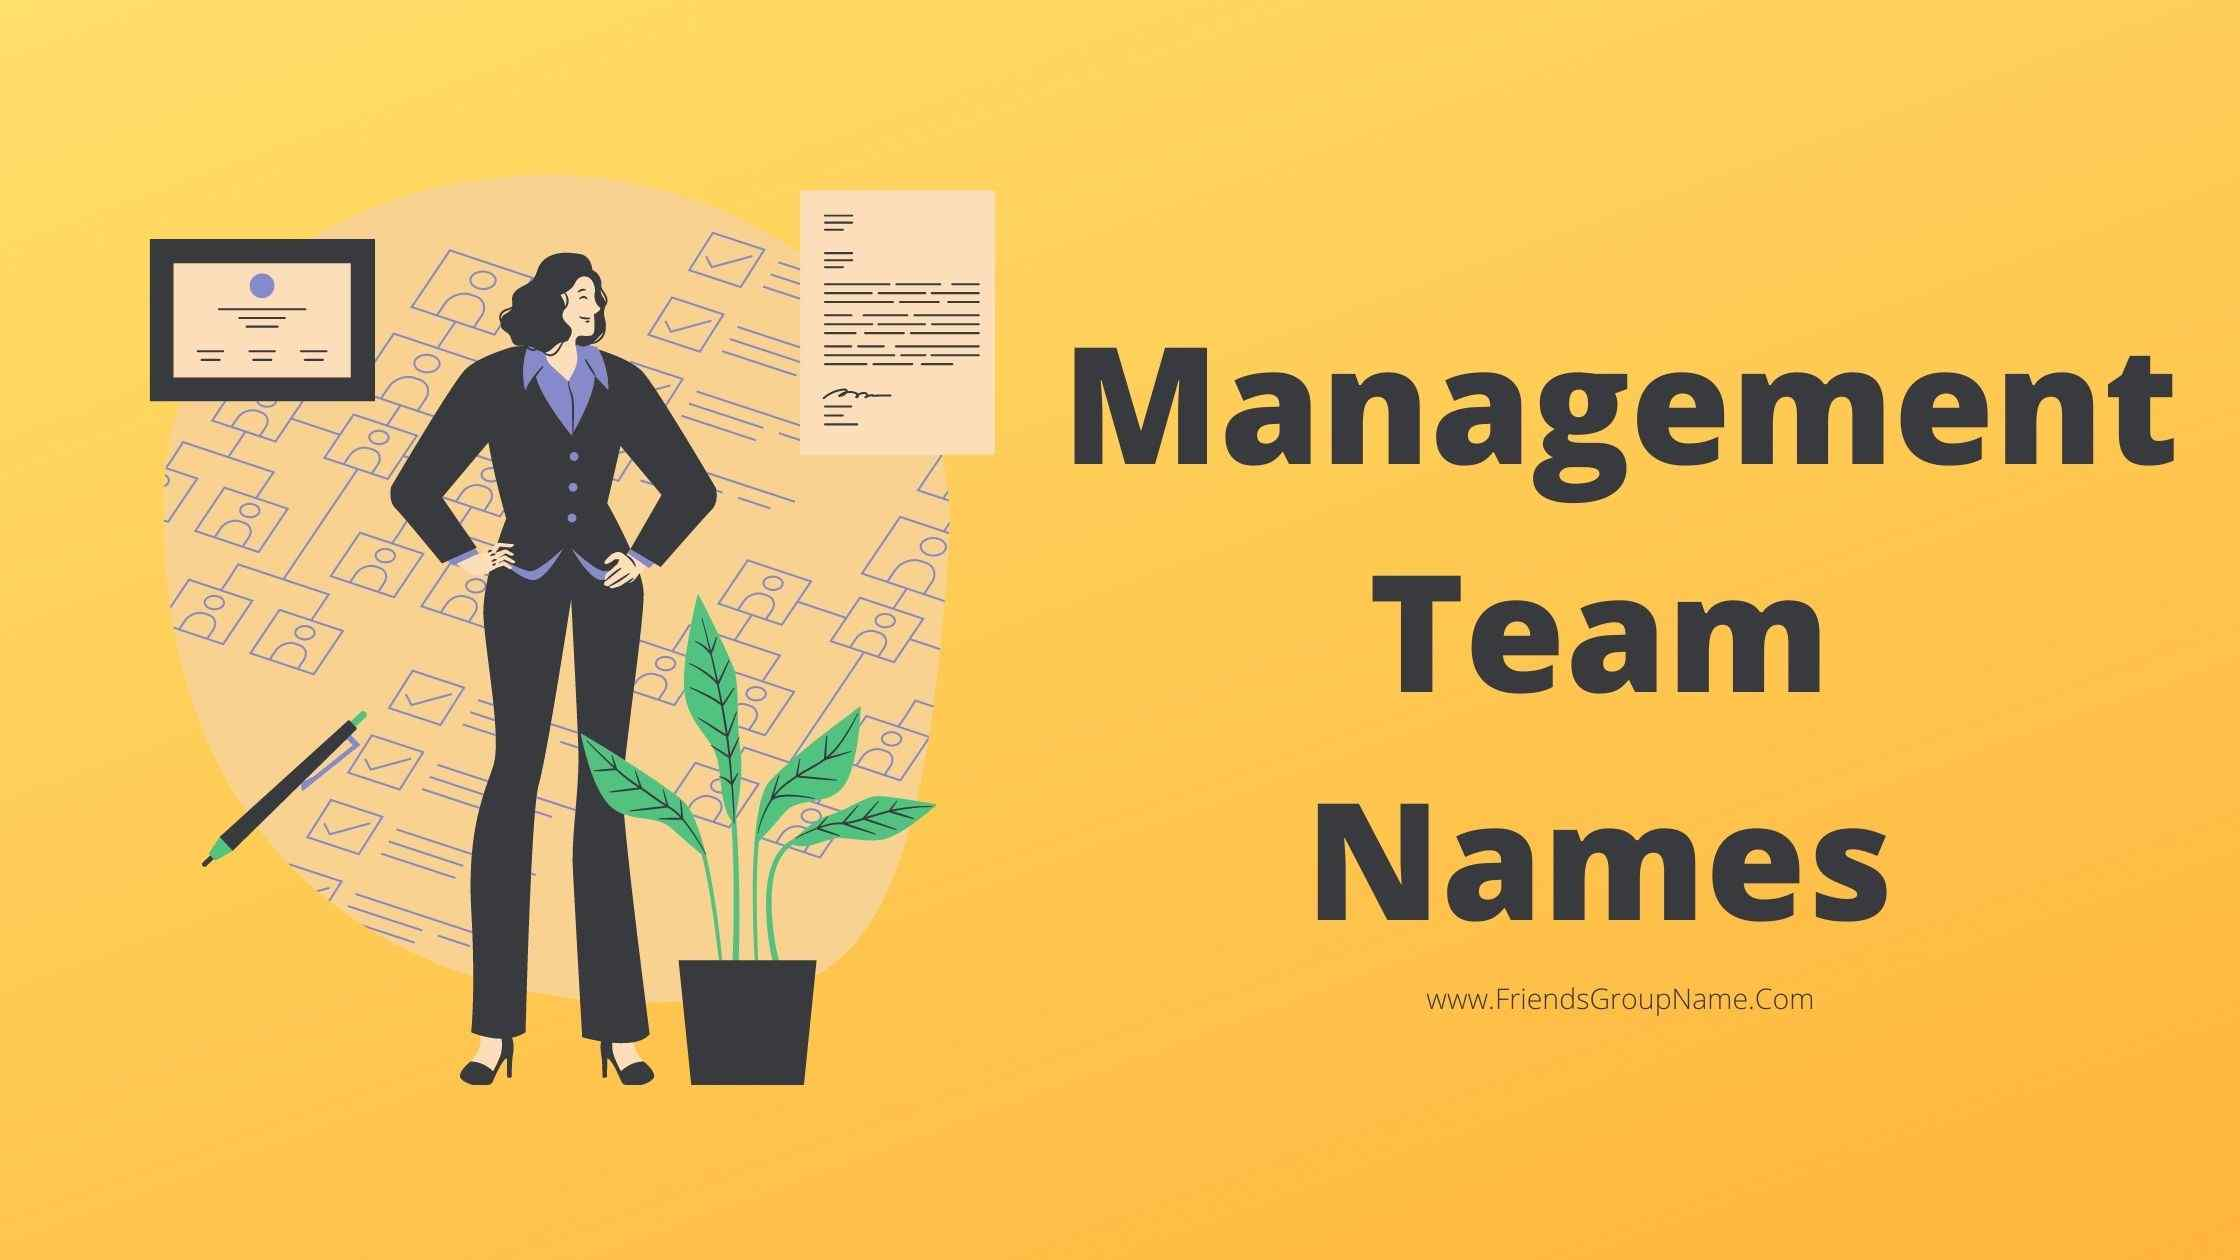 Management Team Names